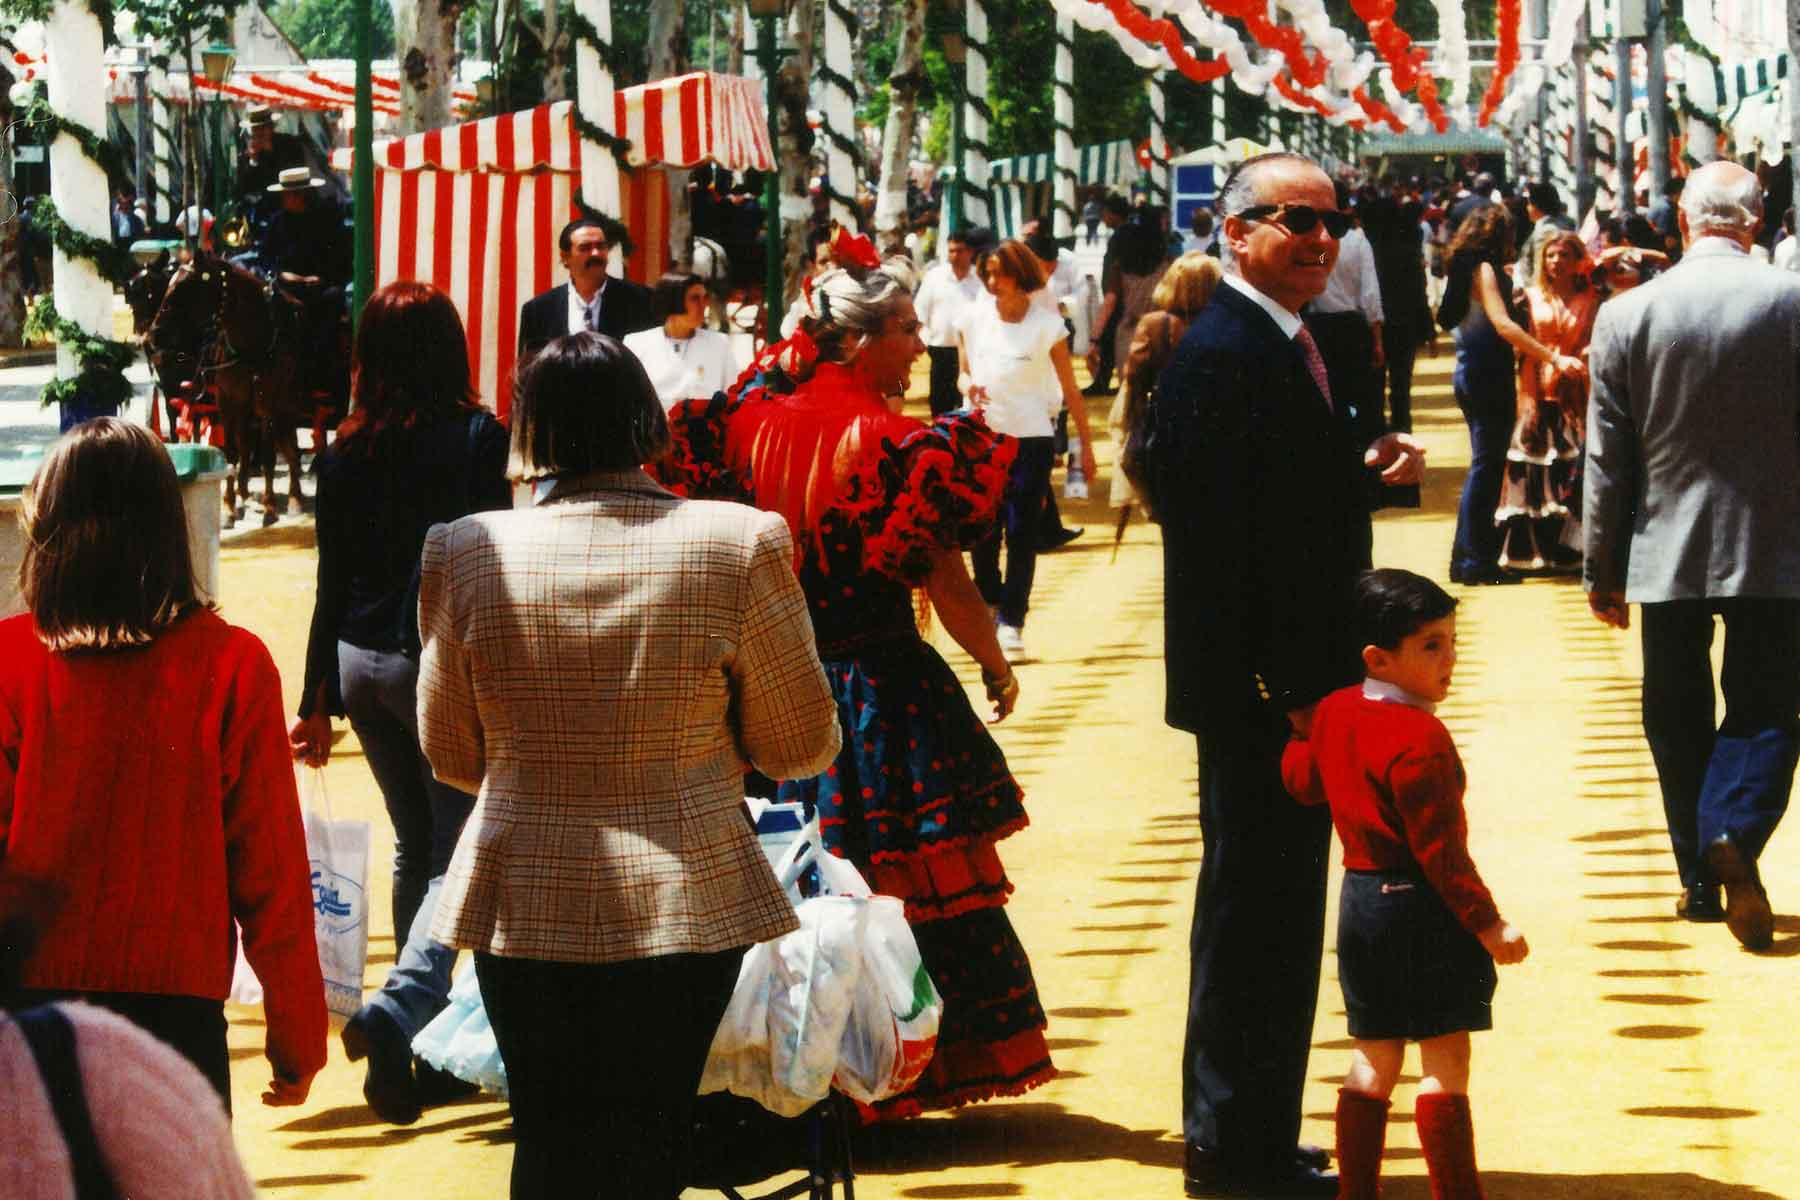 Seville Fair 1998 - Spain Photo Journal - Steven Andrew Martin - Study Abroad - College Consortium International Studies - CCIS